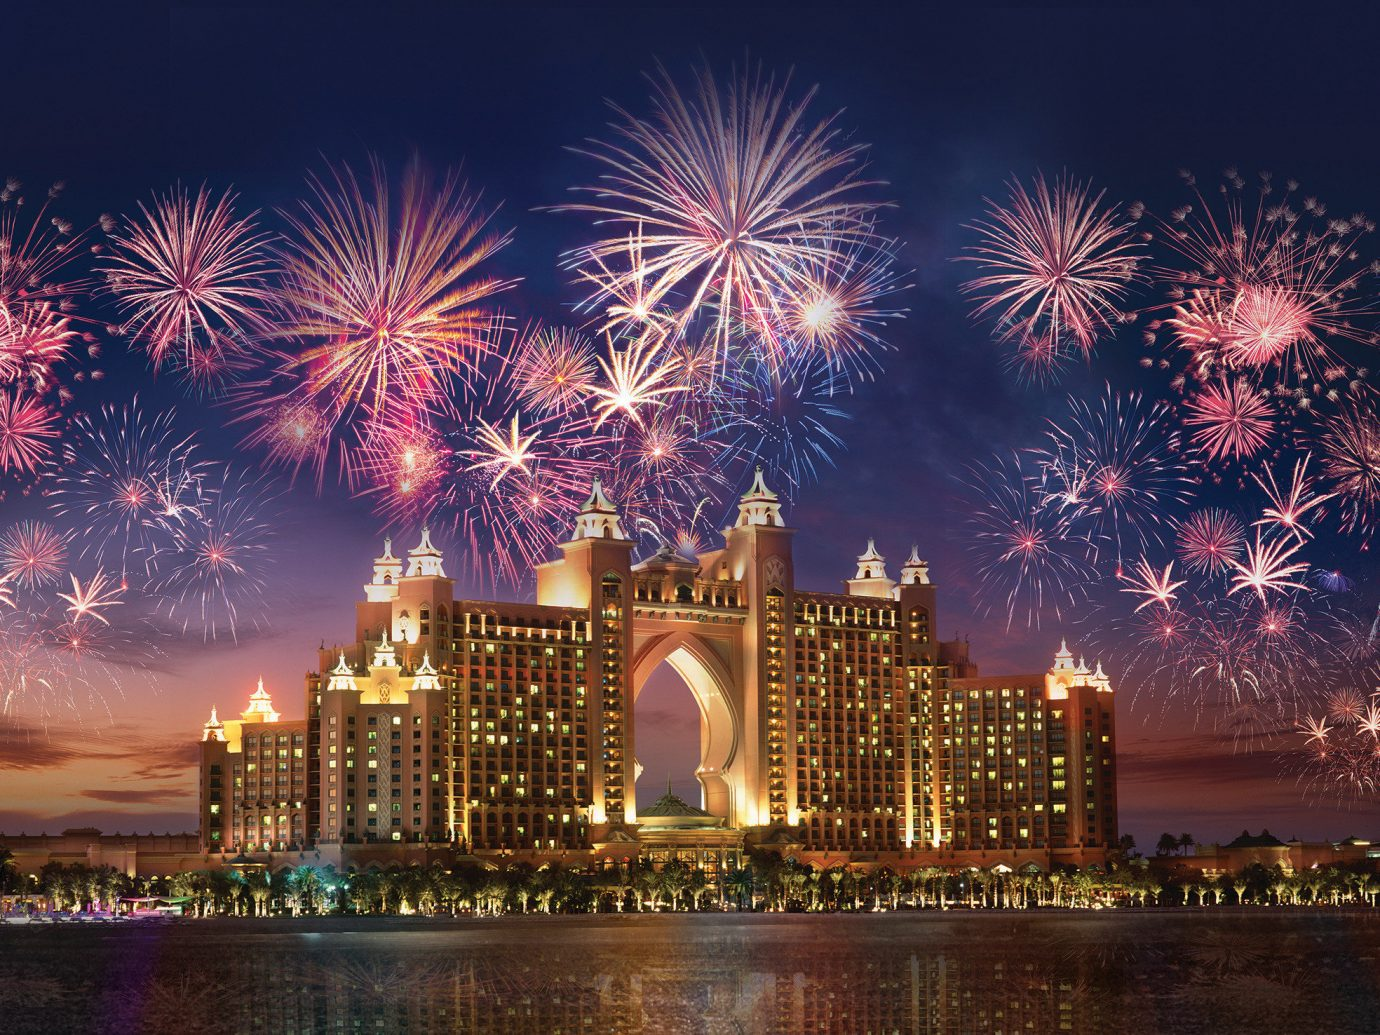 Trip Ideas fireworks outdoor object light outdoor night outdoor recreation event recreation lit new year